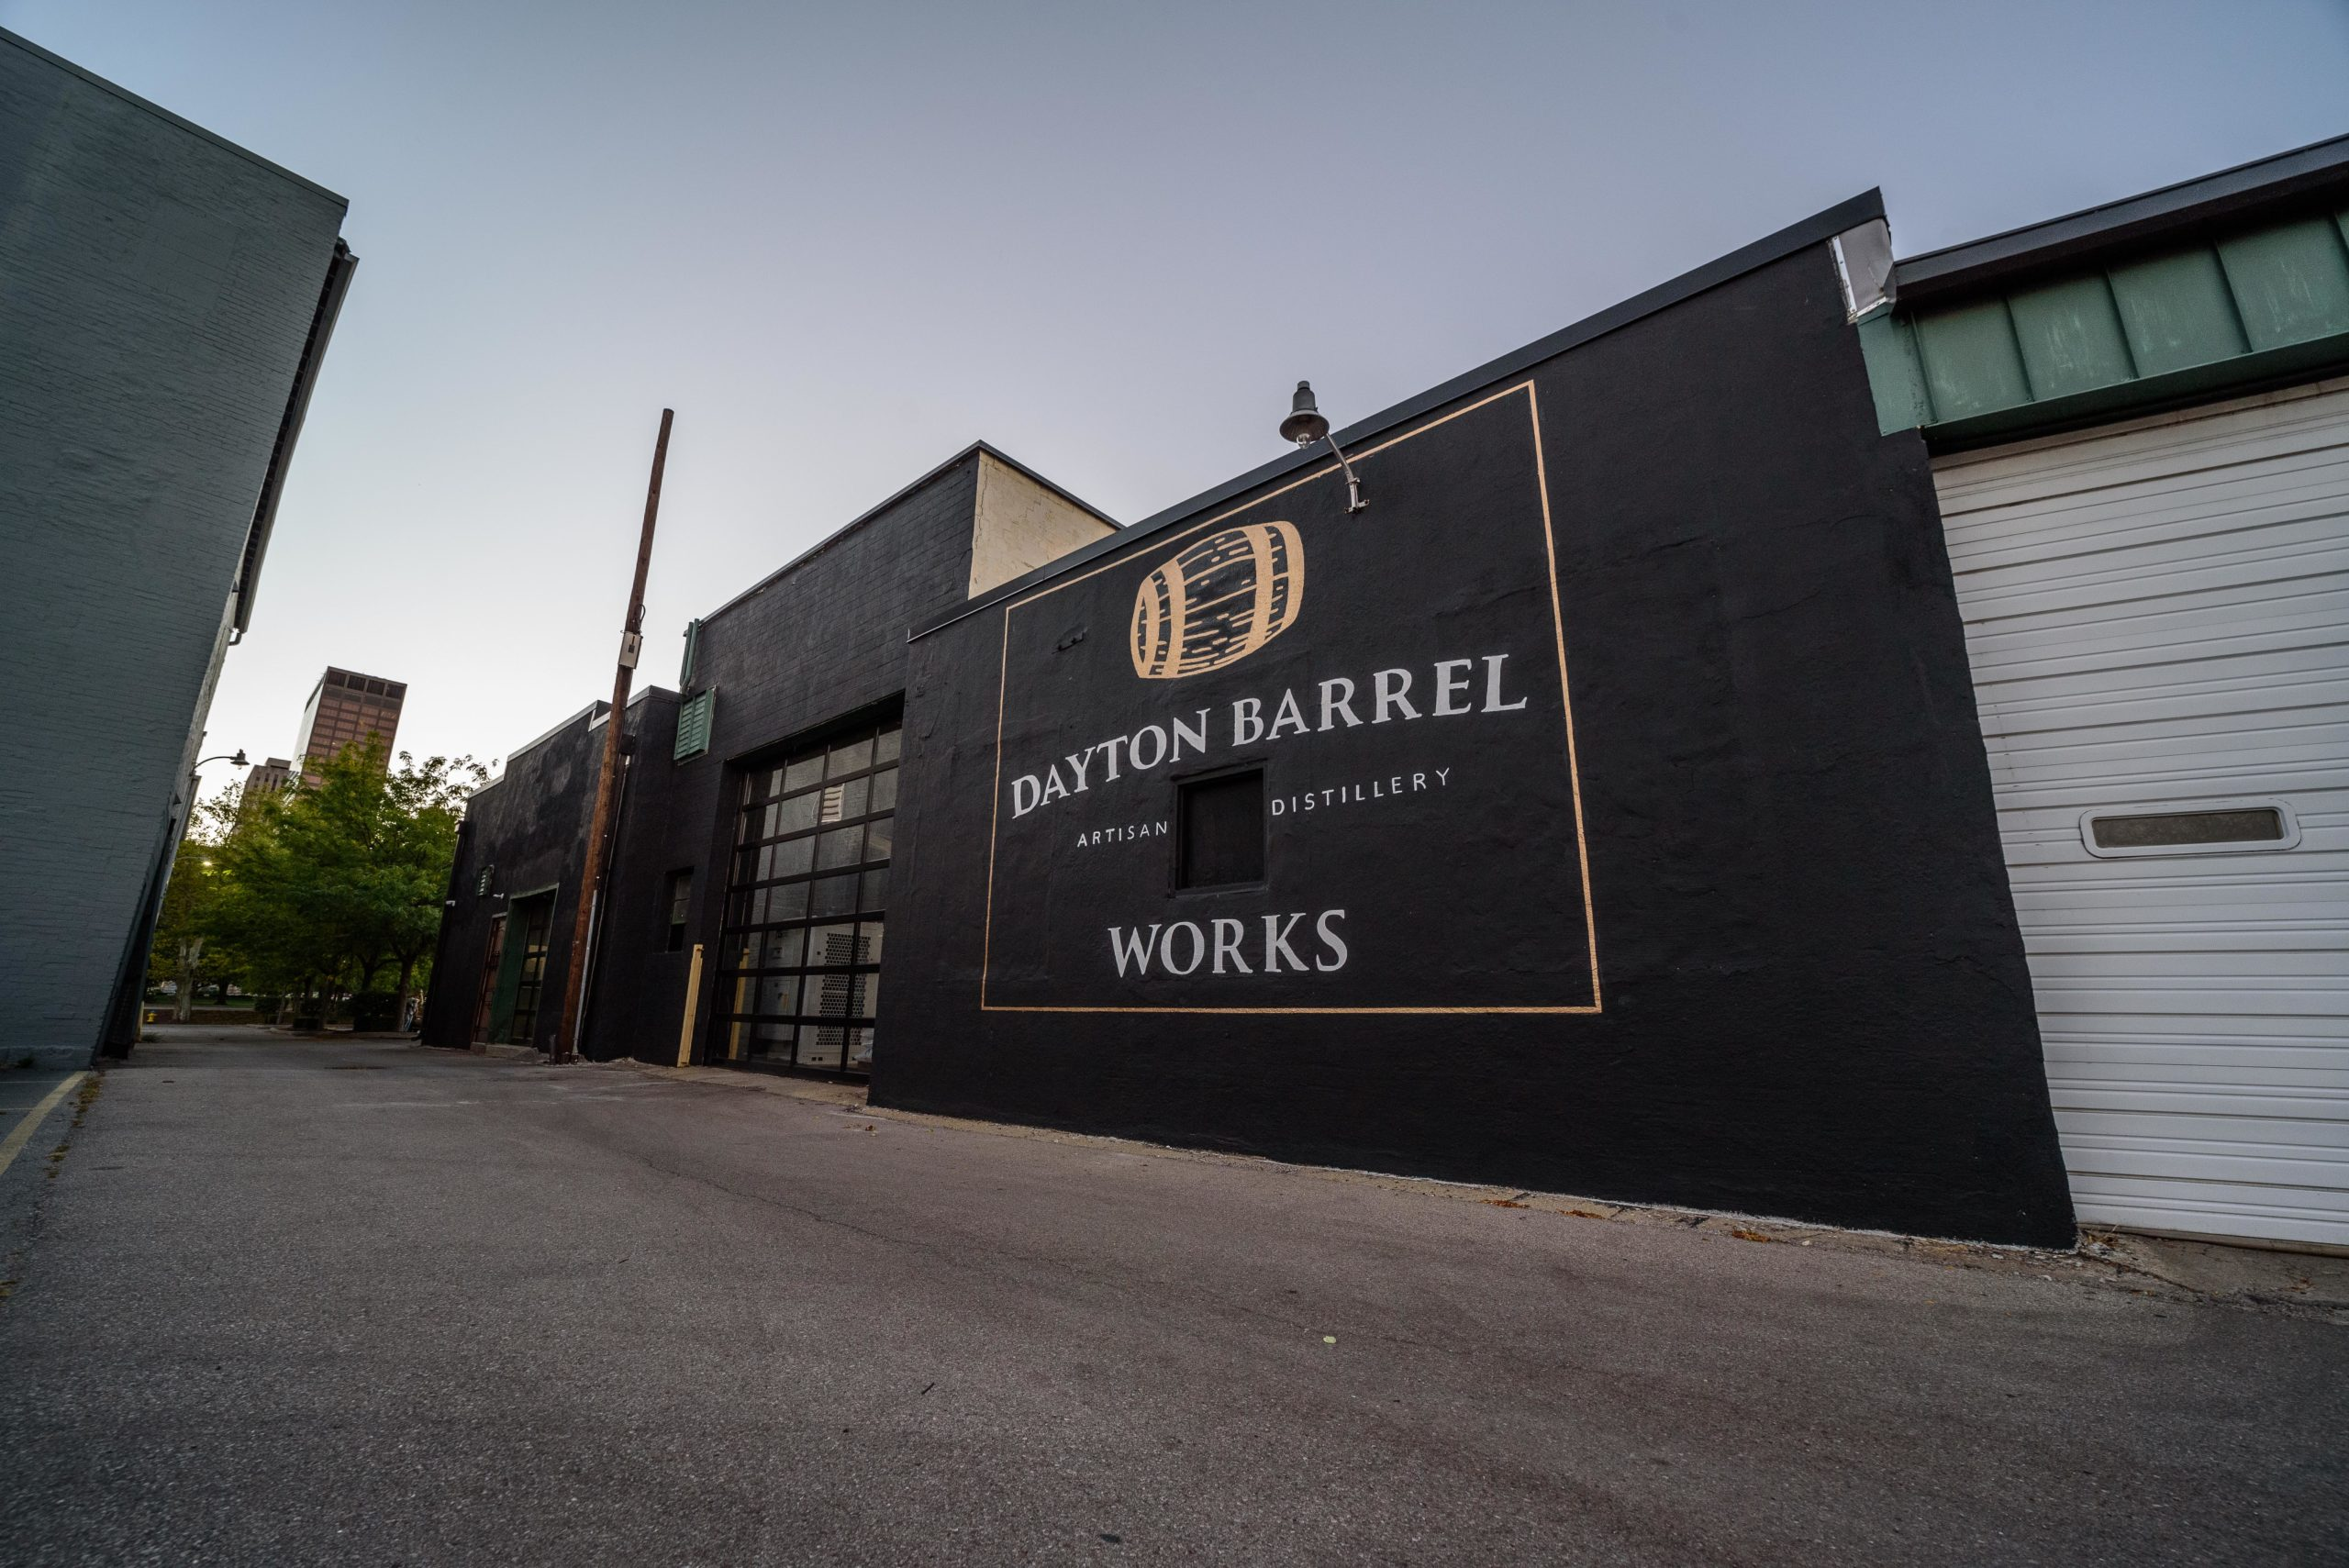 dayton barrel works exterior